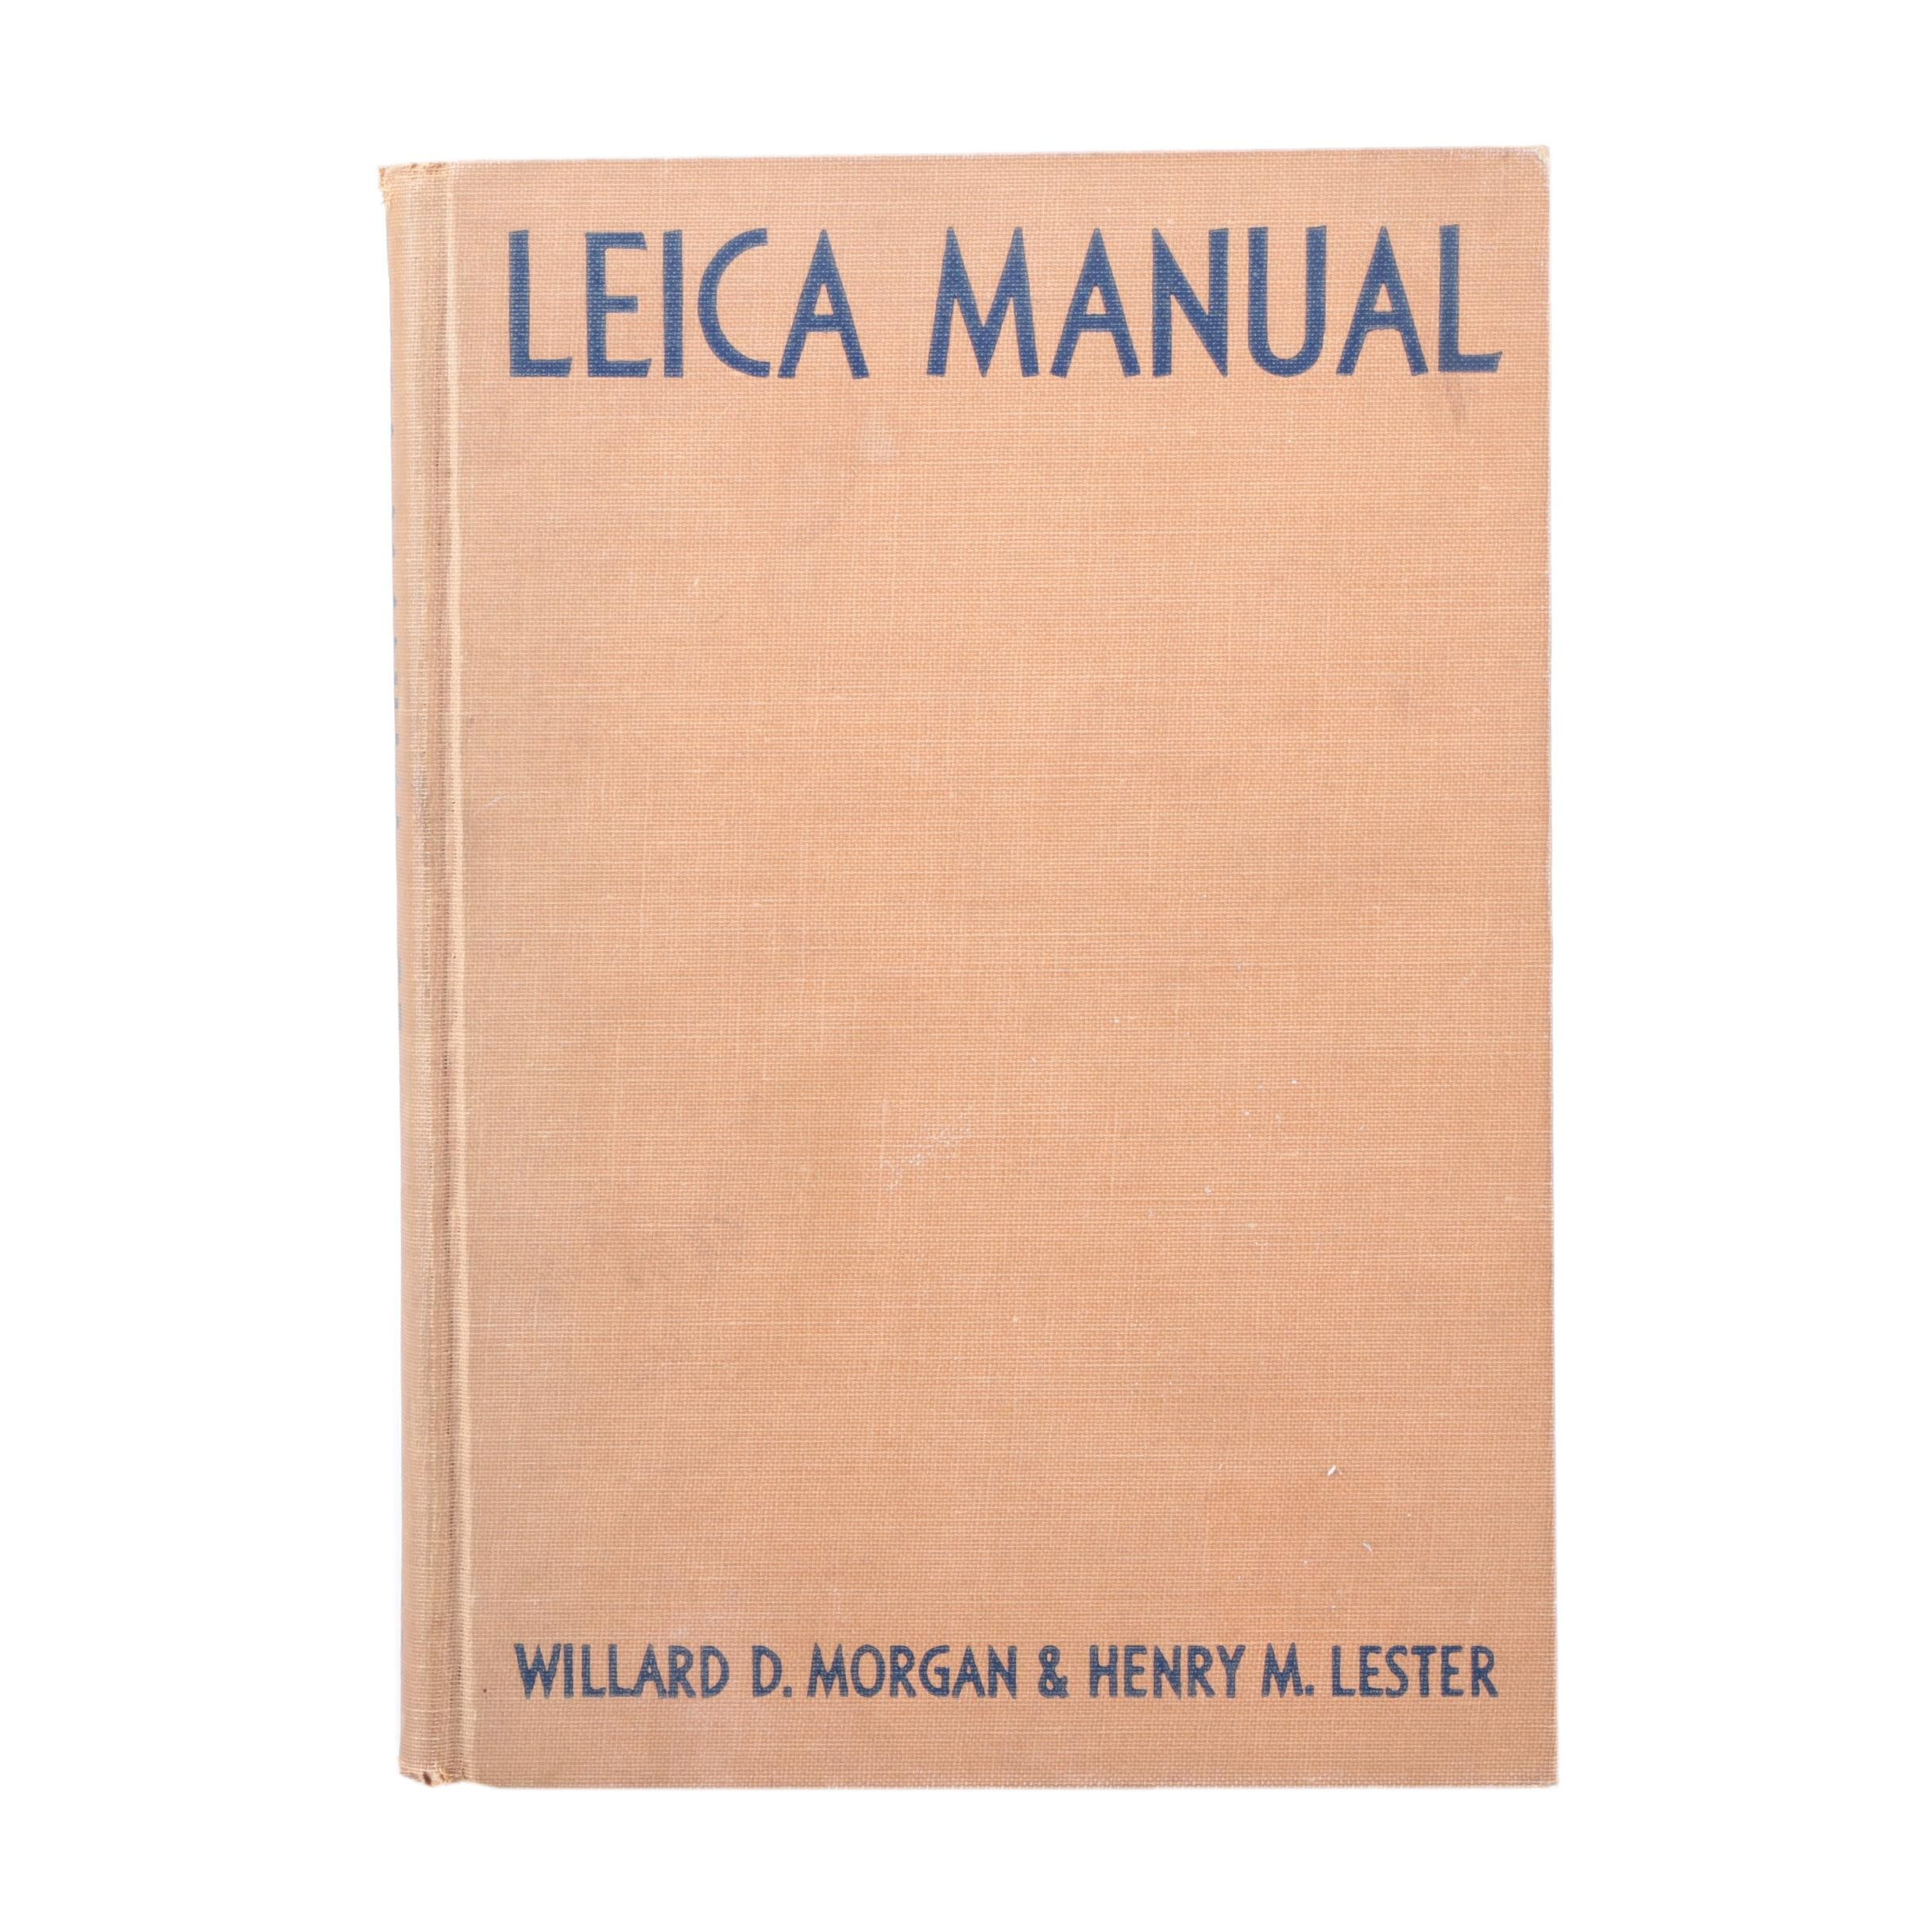 "1951 ""Leica Manual"" by Willard D. Morgan and Henry M. Lester"